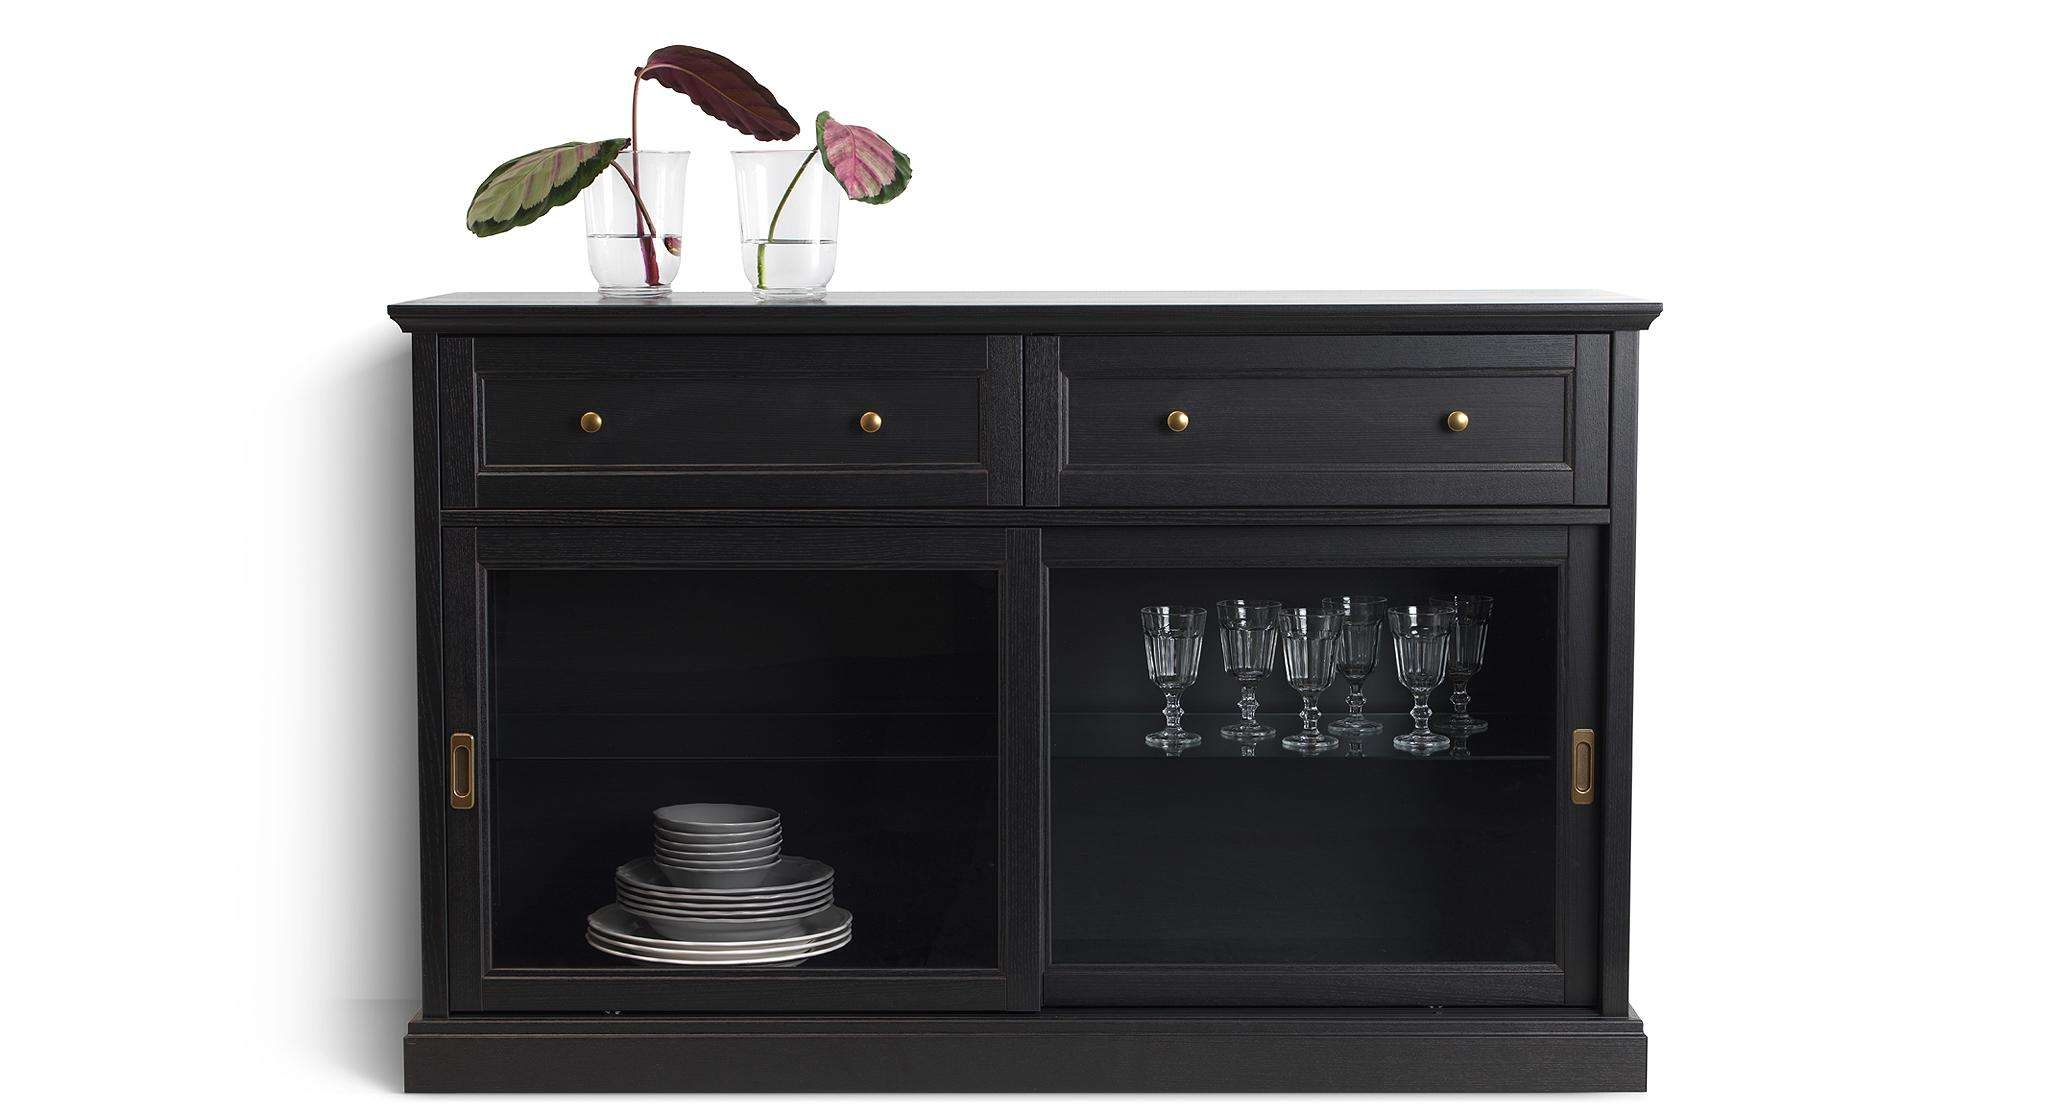 Storage Cabinets & Storage Cupboards | Ikea Ireland In Sideboards With Glass Doors (View 16 of 20)